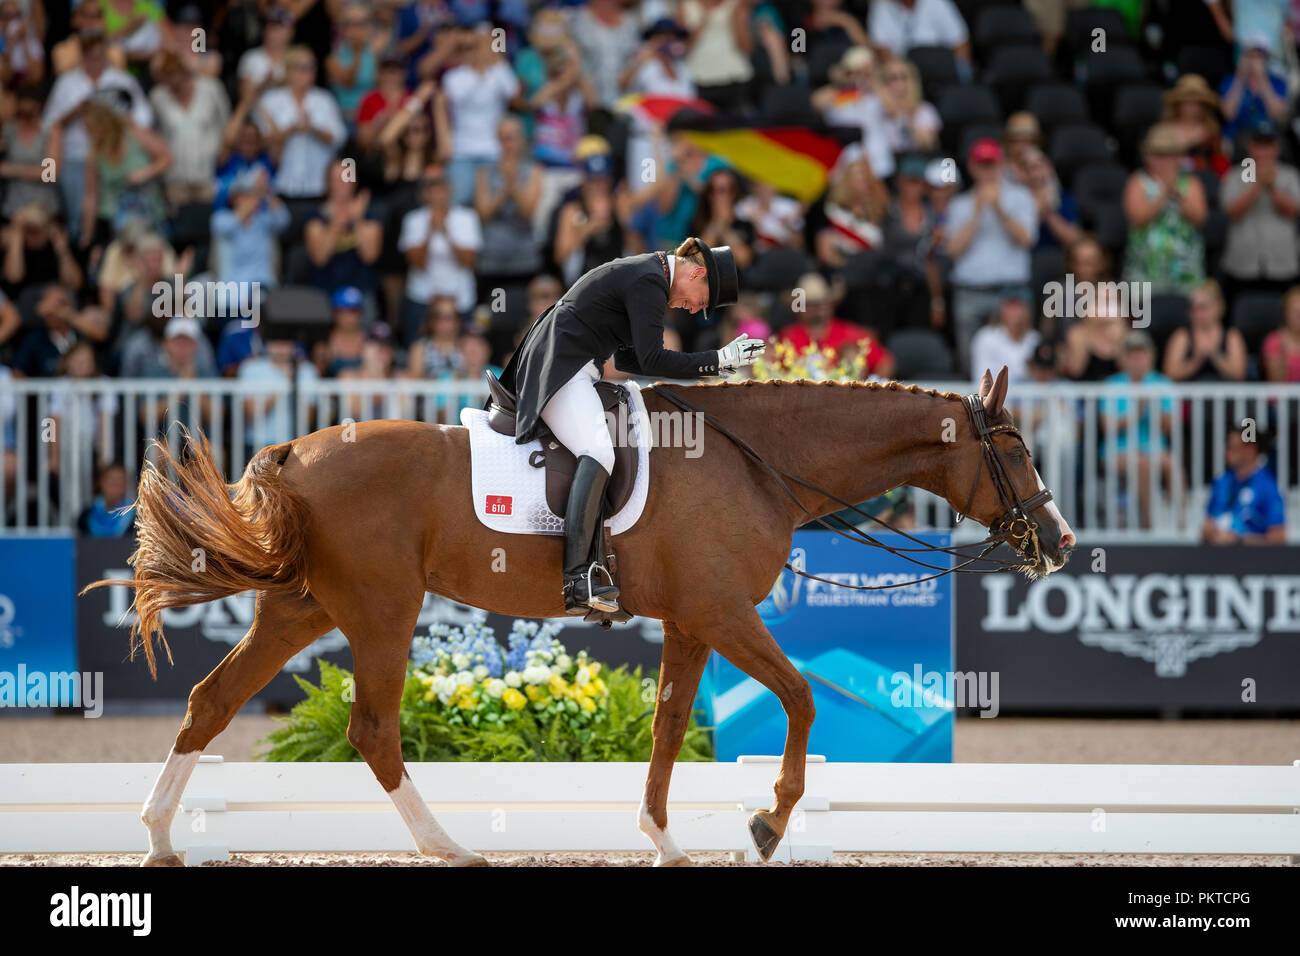 Tryon, USA. 14th Sep, 2018. Riding, FEI World Equestrian Game 2018, Grand Prix Special: Isabell Werth celebrates her victory at Bella Rose. Credit: Stefan Lafrentz/dpa/Alamy Live News Stock Photo